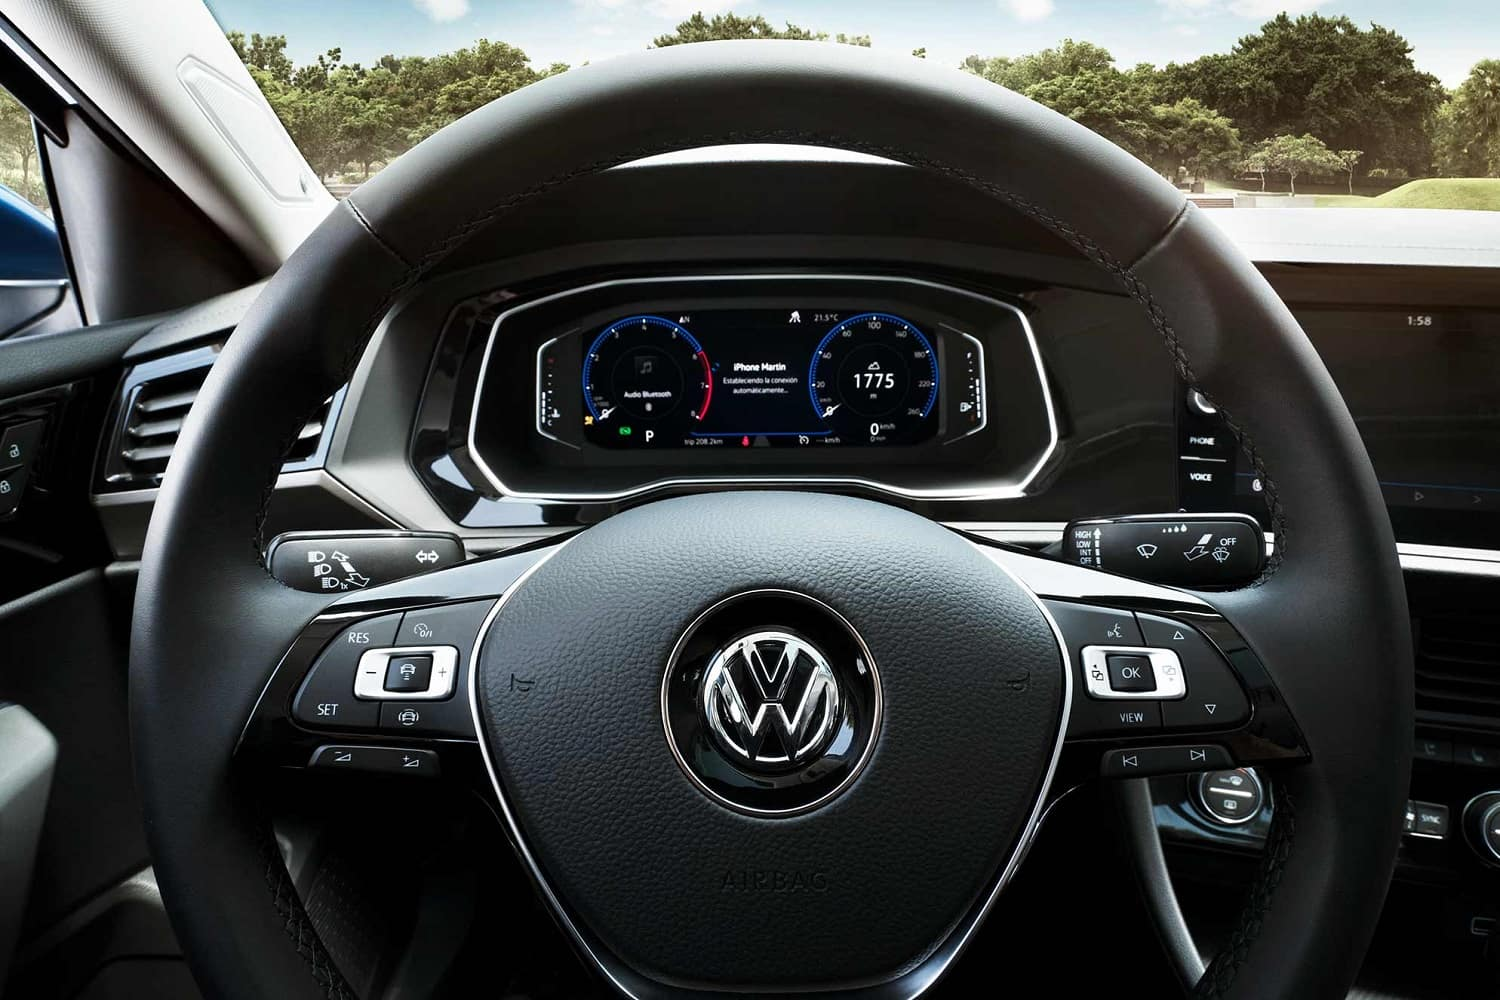 VW Jetta Trim Levels in Toms River, New Jersey